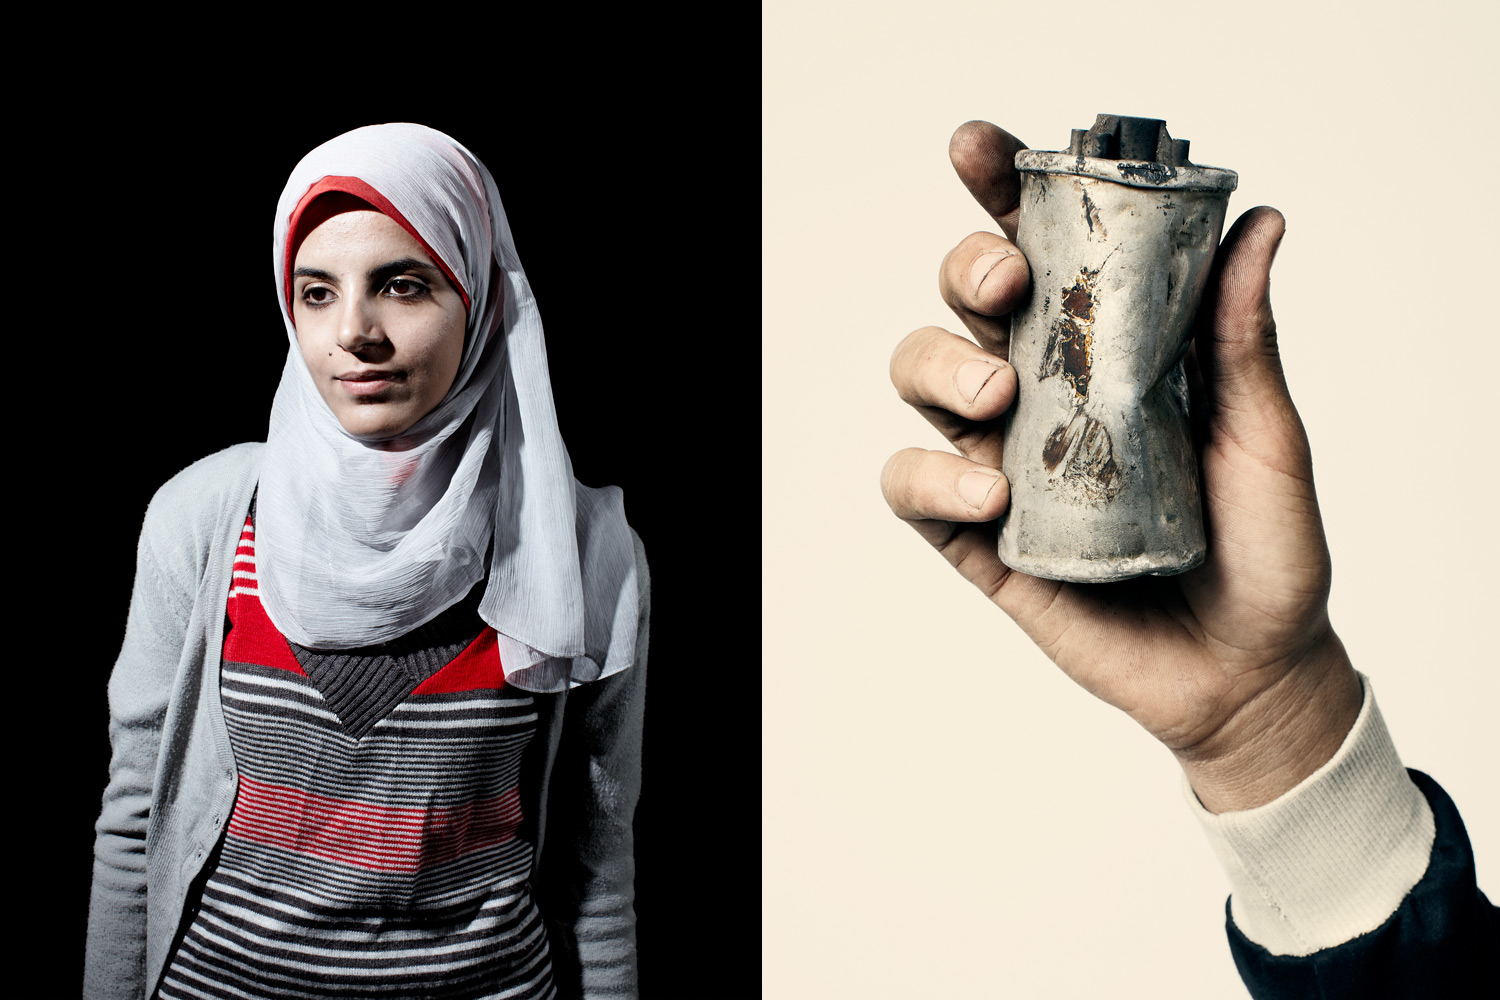 Egyptian protester Nehal Marei. Right, a tear-gas canister in Egypt.